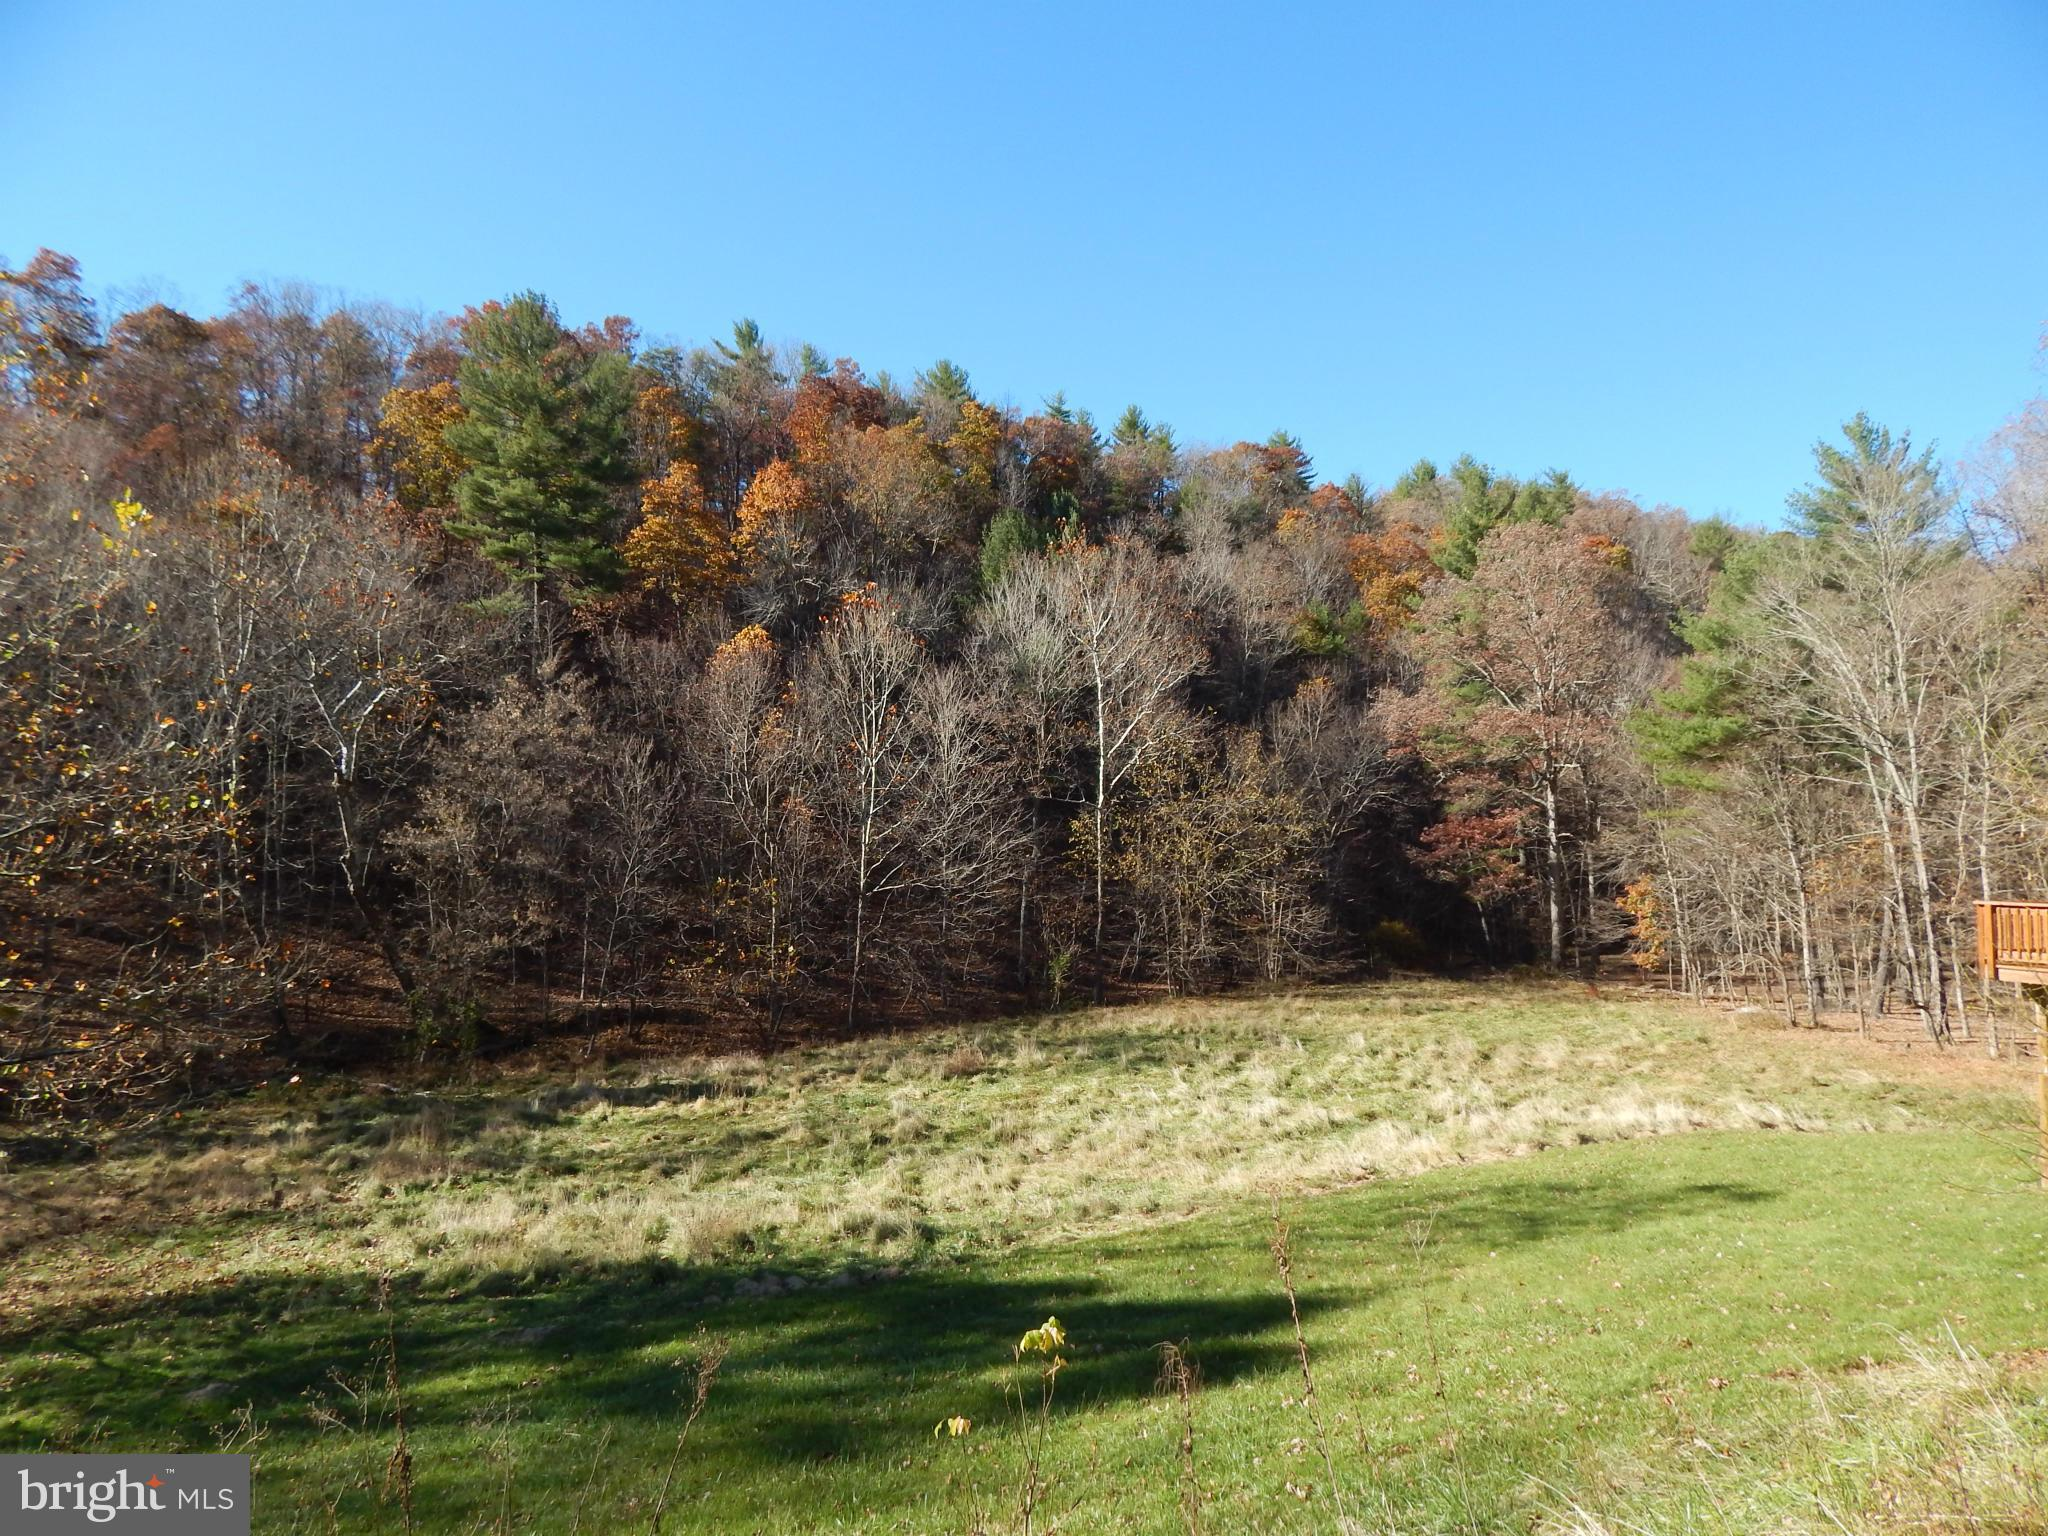 CACAPON ROAD, GREAT CACAPON, WV 25422